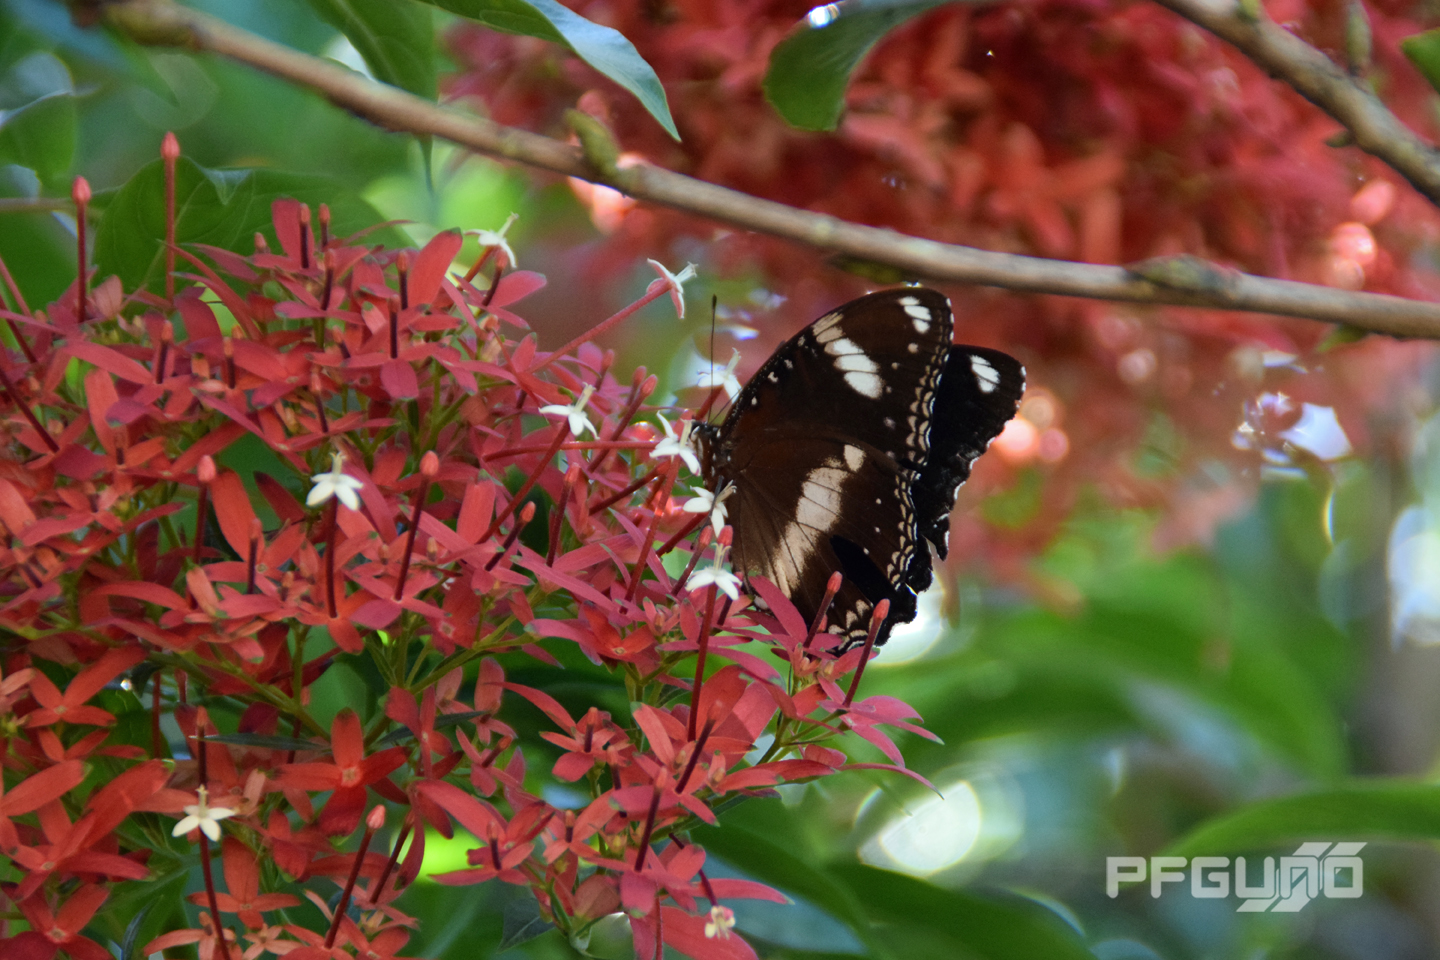 Butterfly And The Red Flowers [SHOT 1]